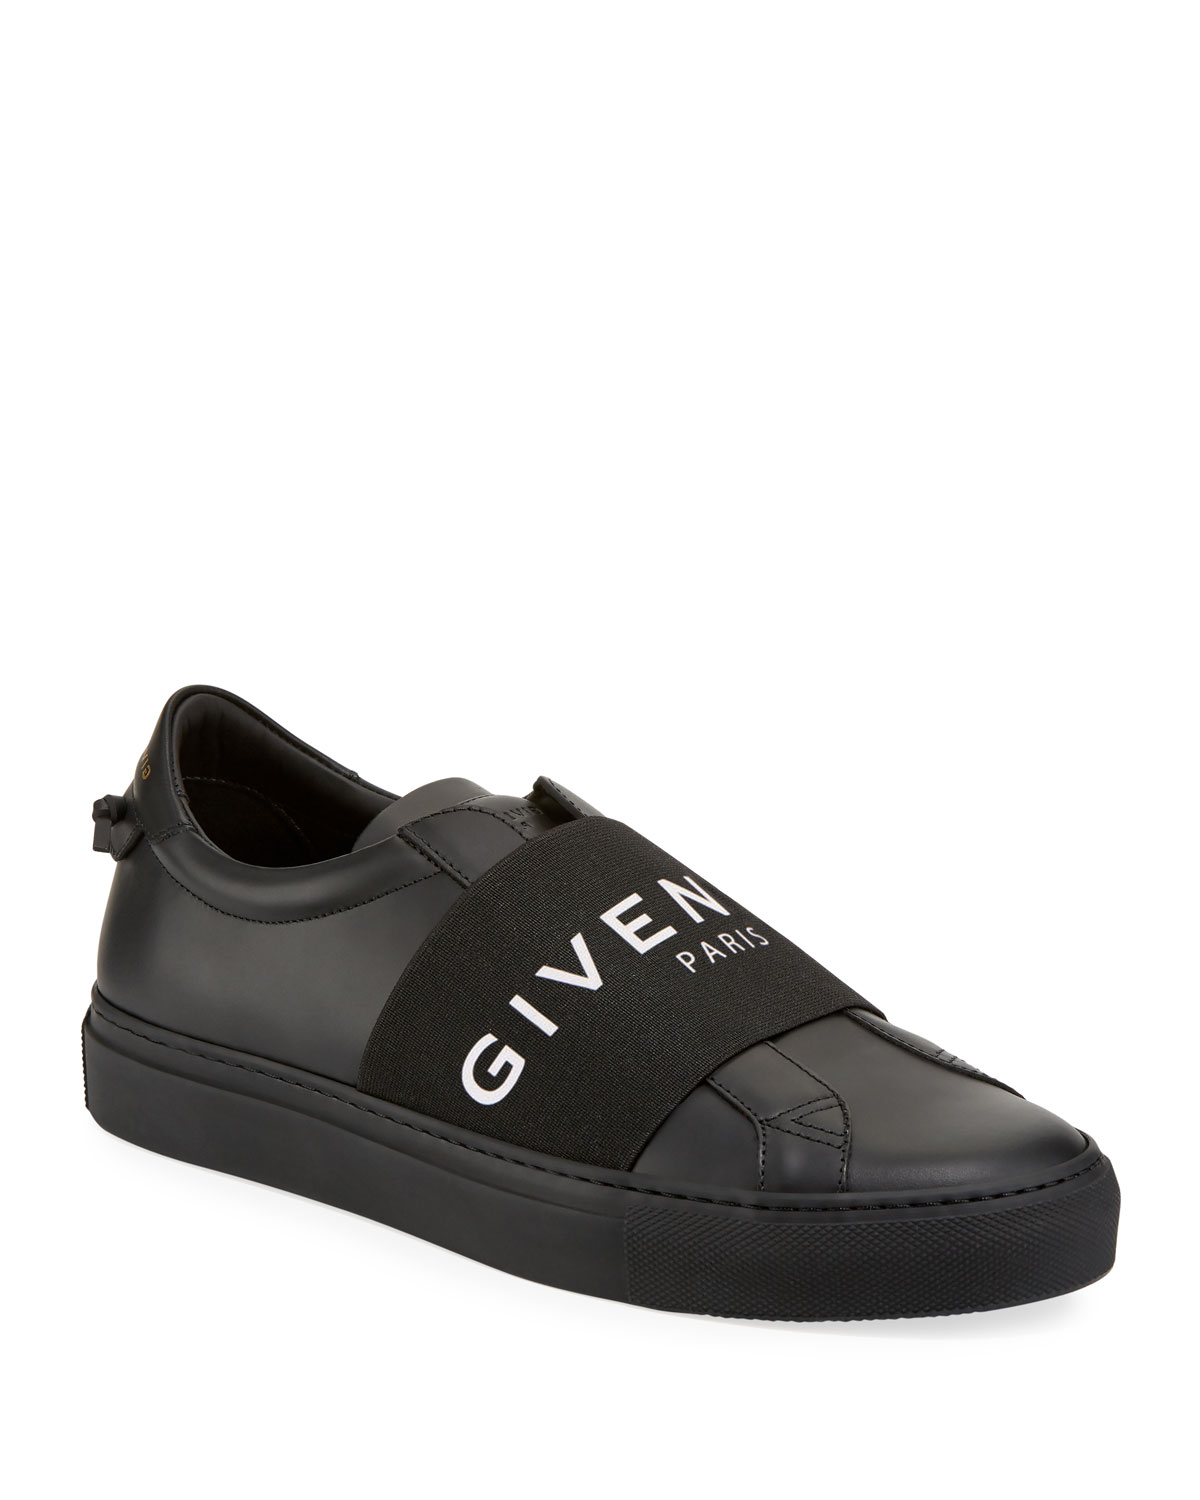 Givenchy Men S Urban Street Elastic Slip On Sneakers